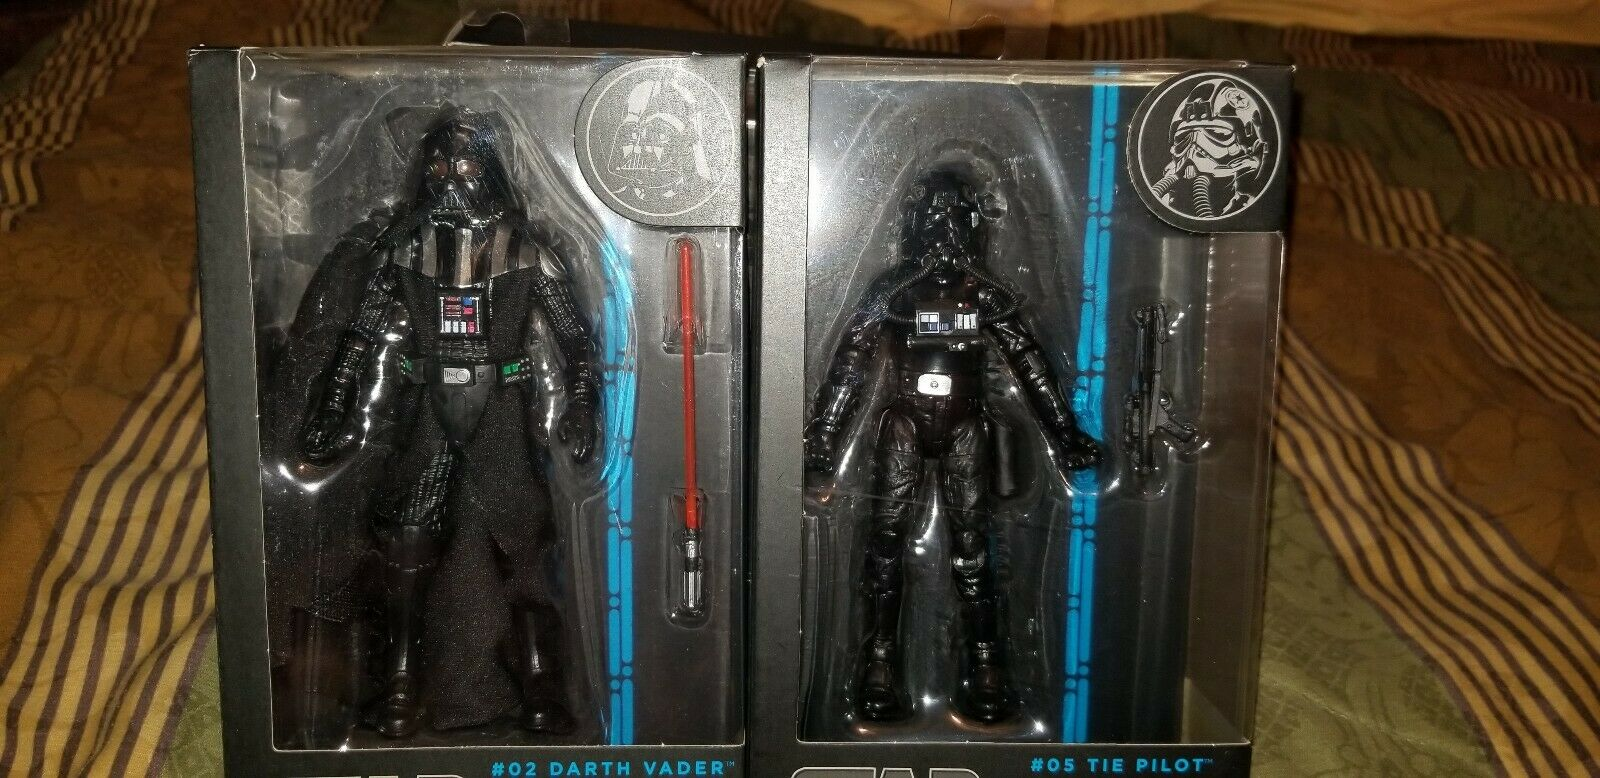 Star Wars The Black Series  05 Tie Pilot  02 Darth Vader (blueE LINE) -RARE